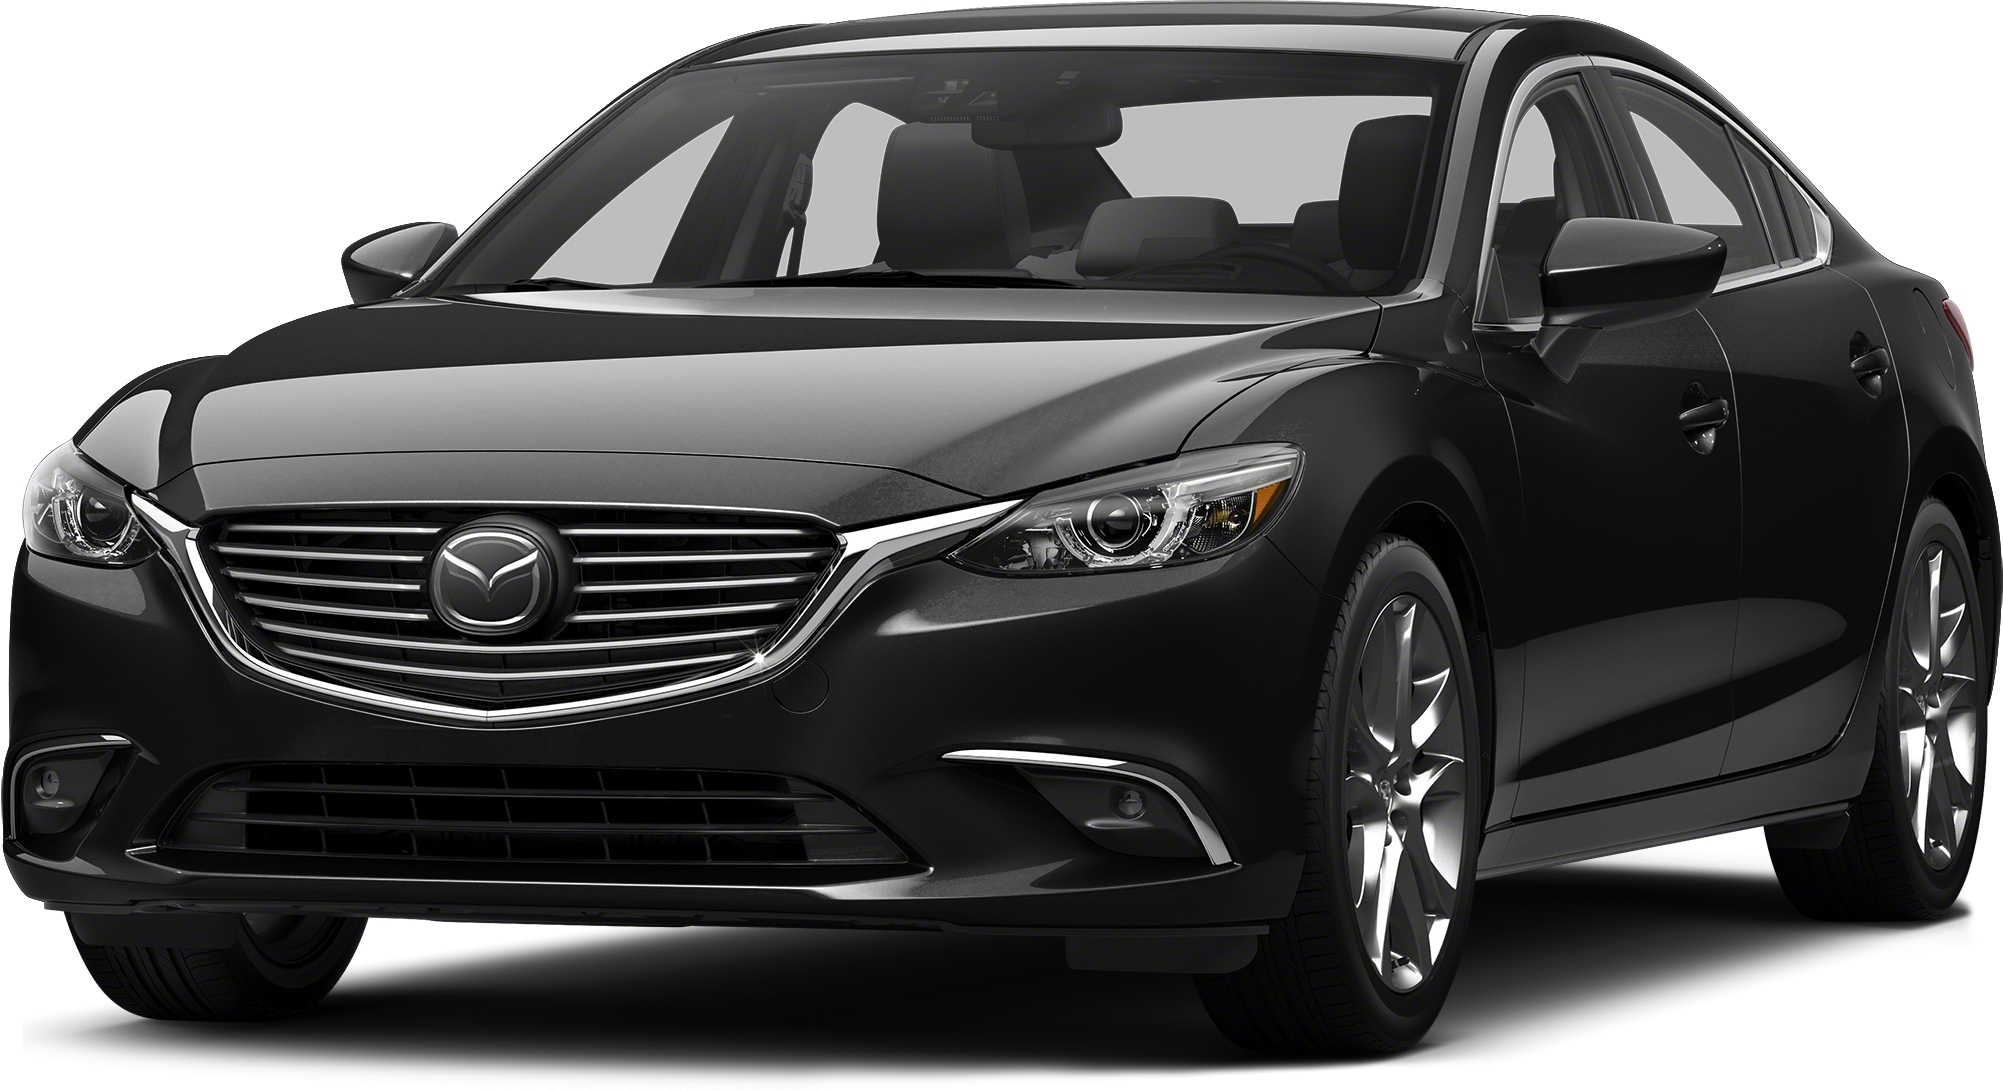 2016 mazda mazda6 i sport turnersville nj 8632869. Black Bedroom Furniture Sets. Home Design Ideas